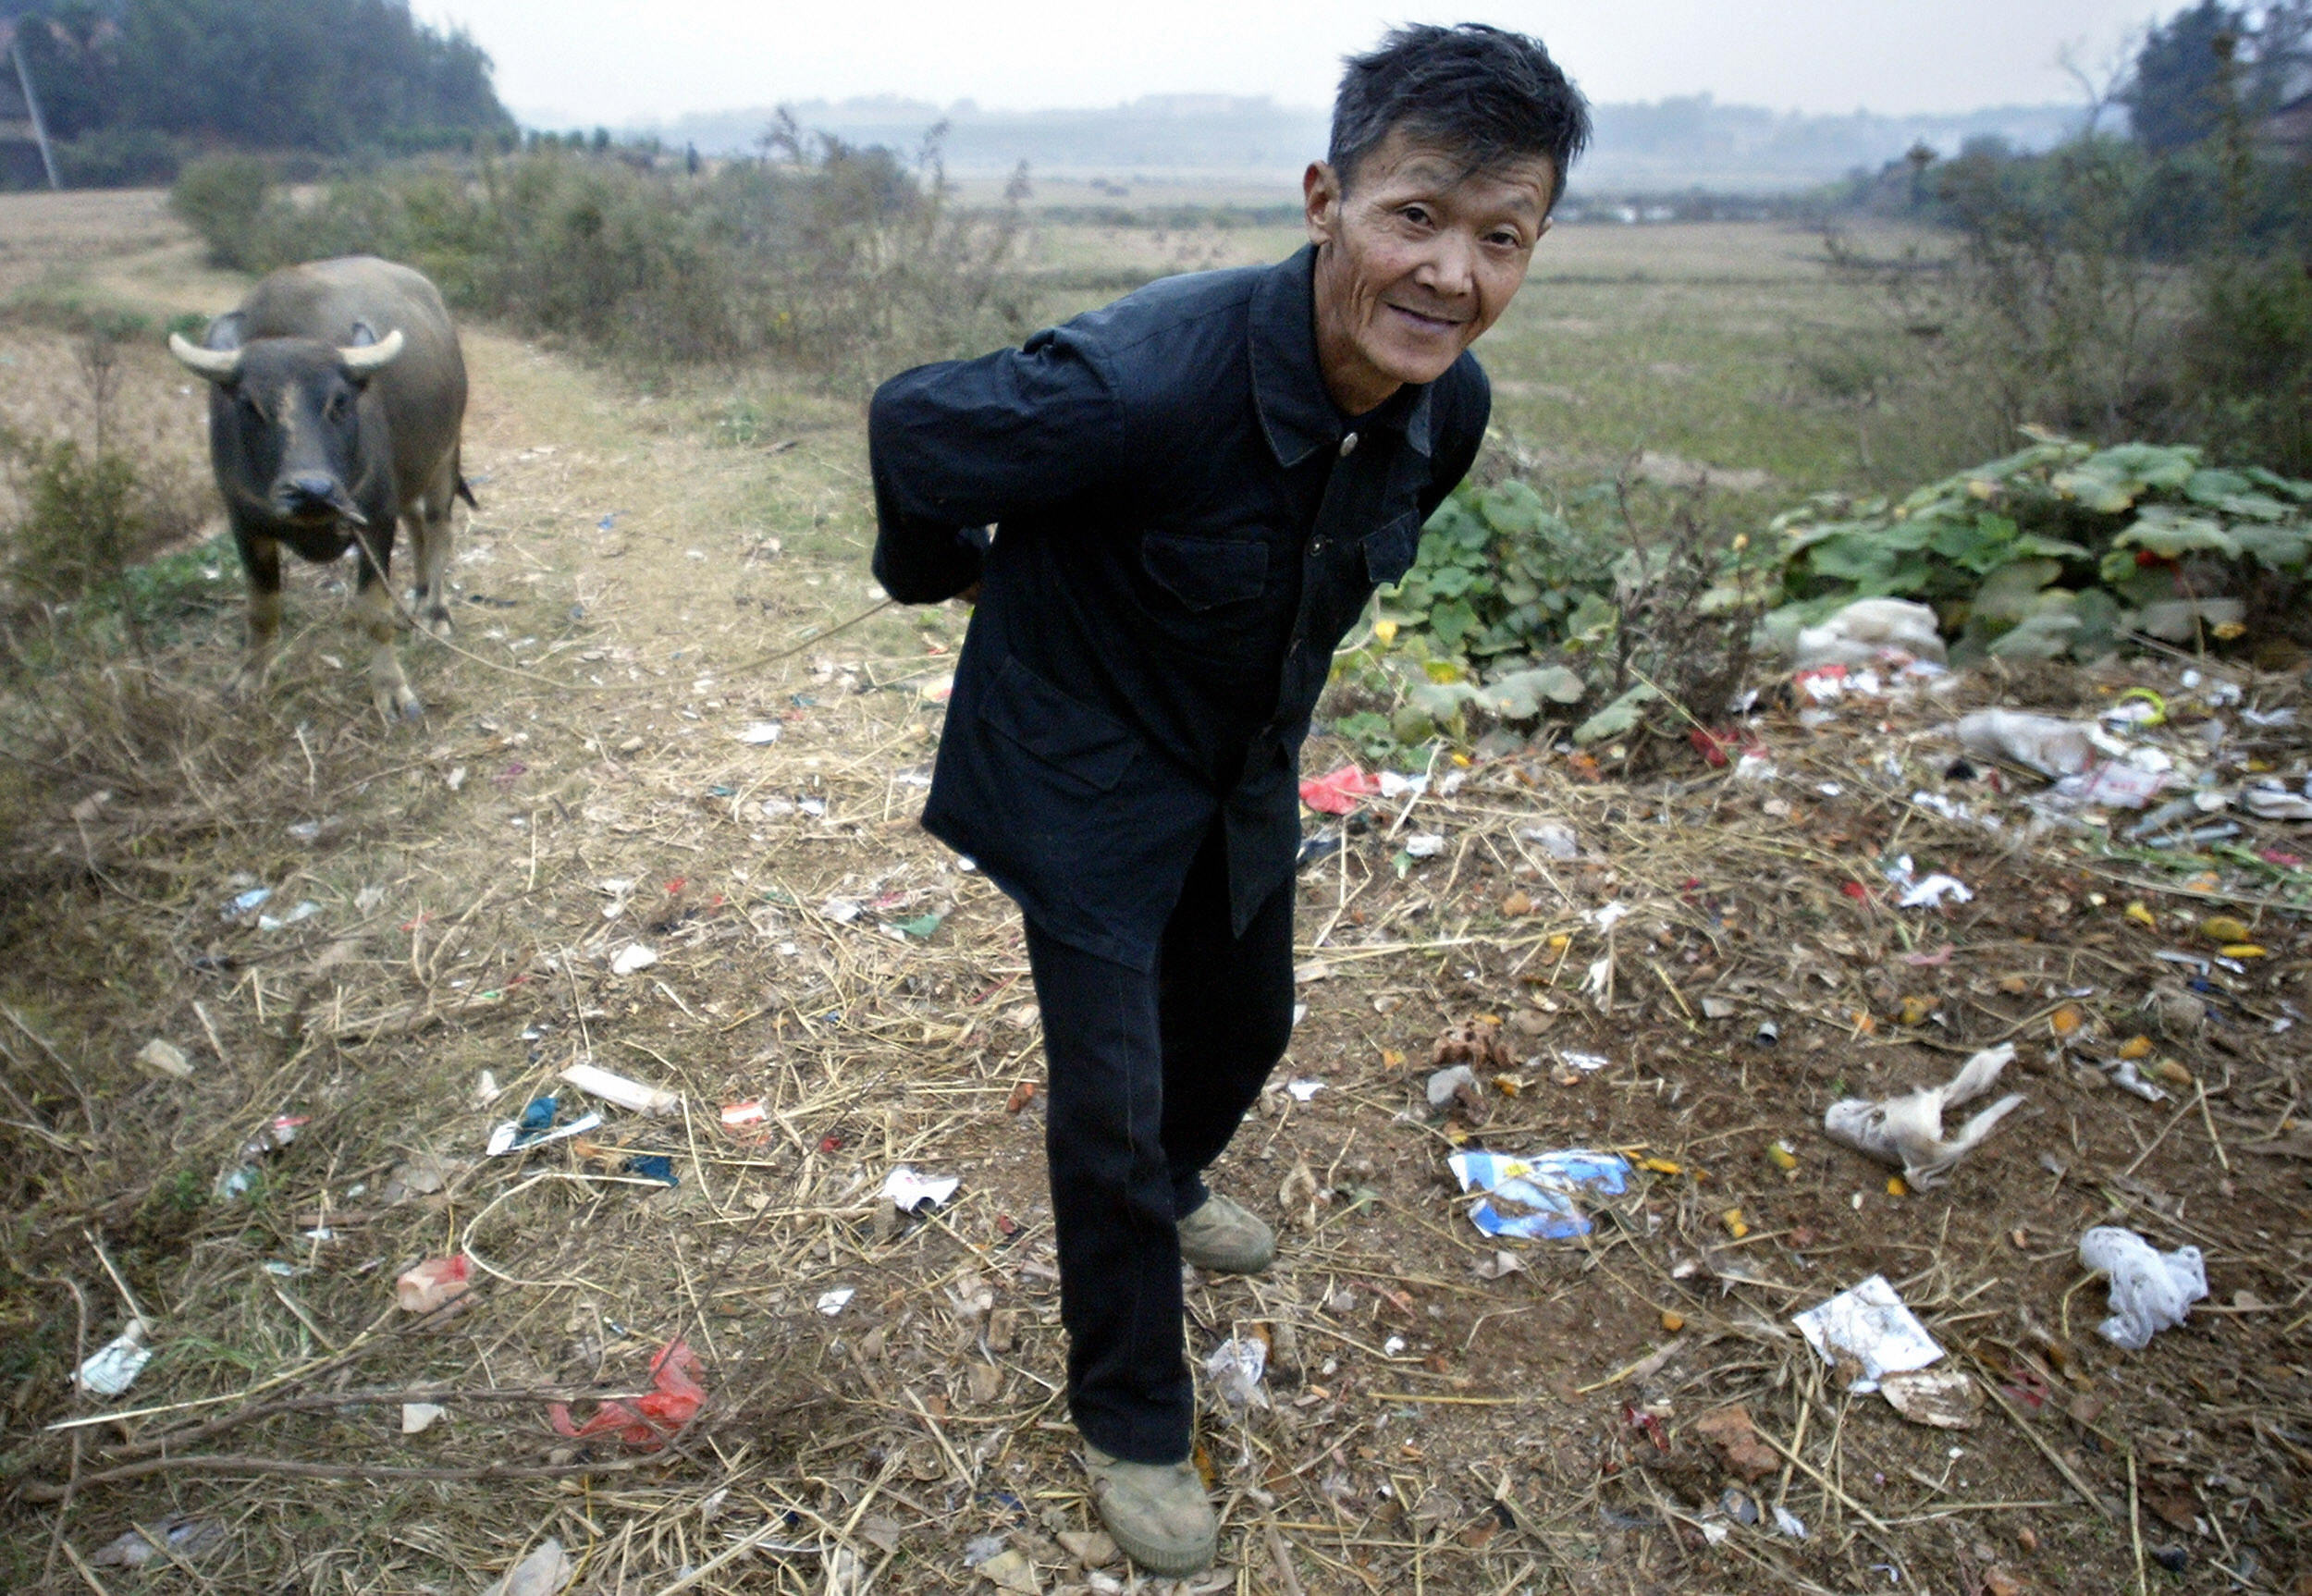 Chinese Regime Uses Youtube Star to Romanticize Rural Living